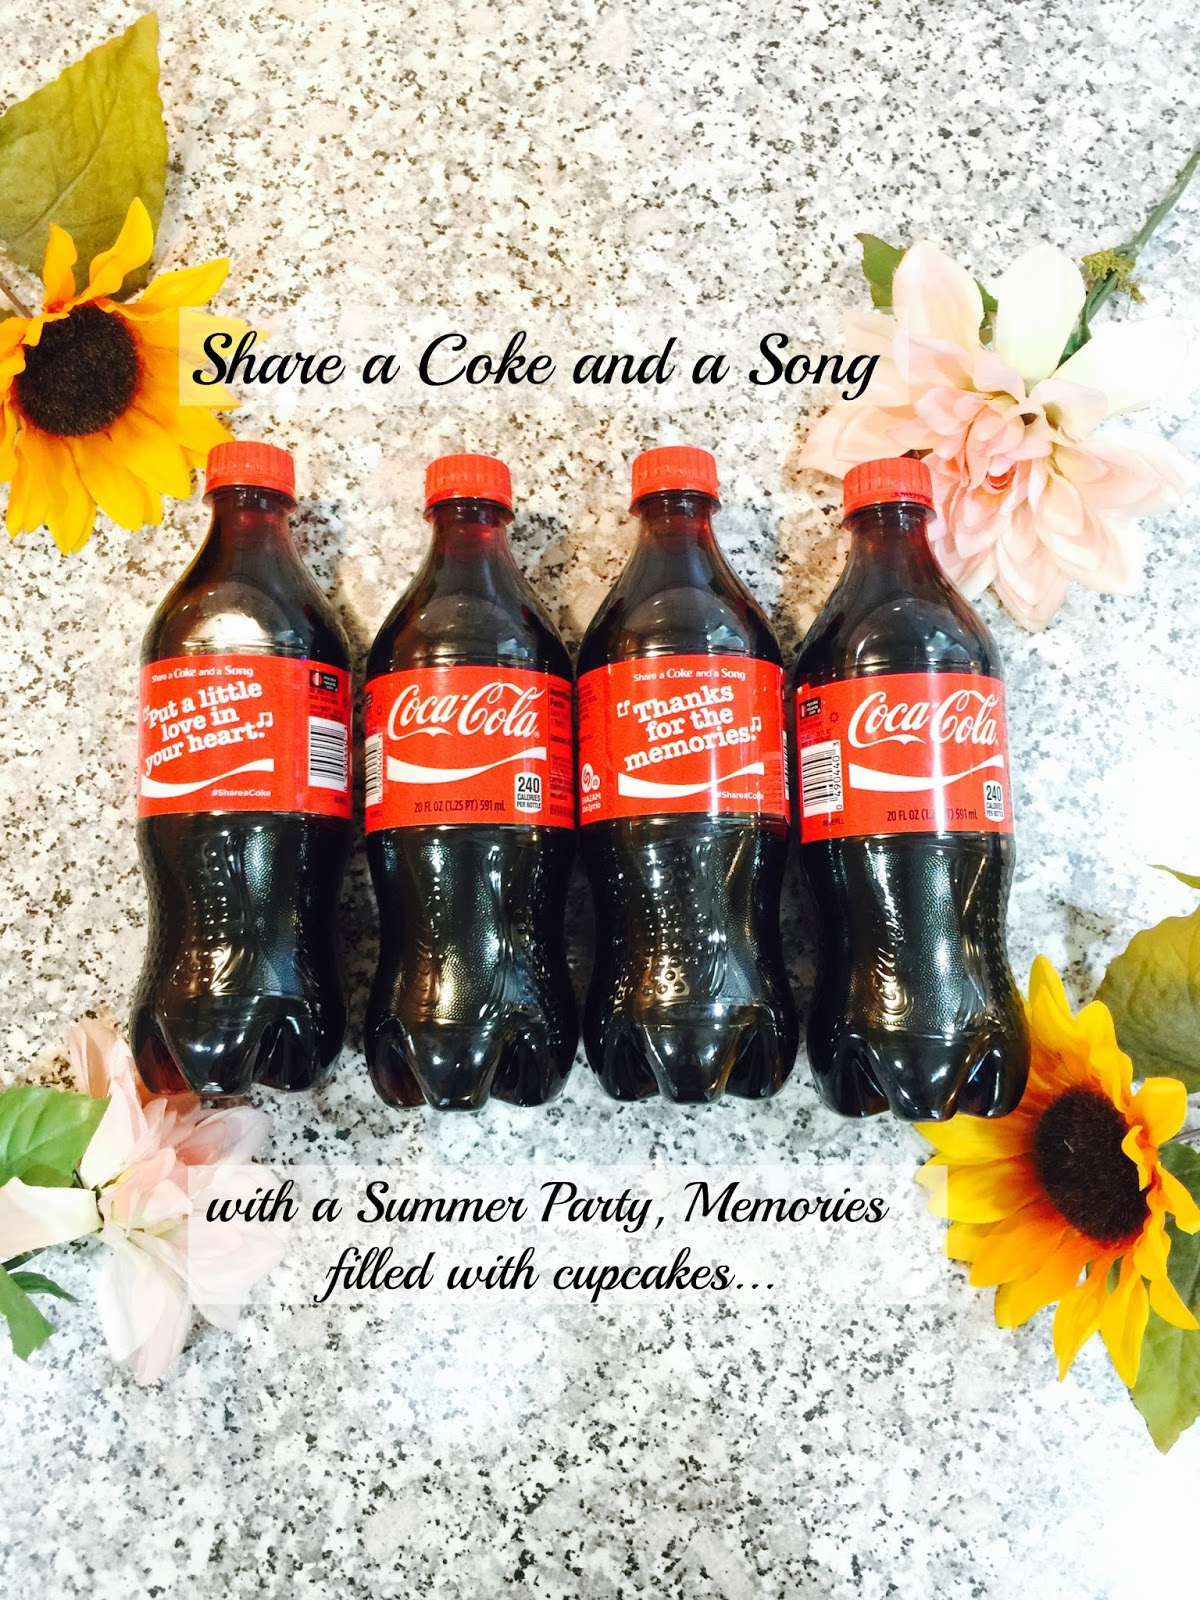 4 tips on how to create a coca-cola party for summer, Coca-Cola share a coke and song, coke party for summer, party for summer,